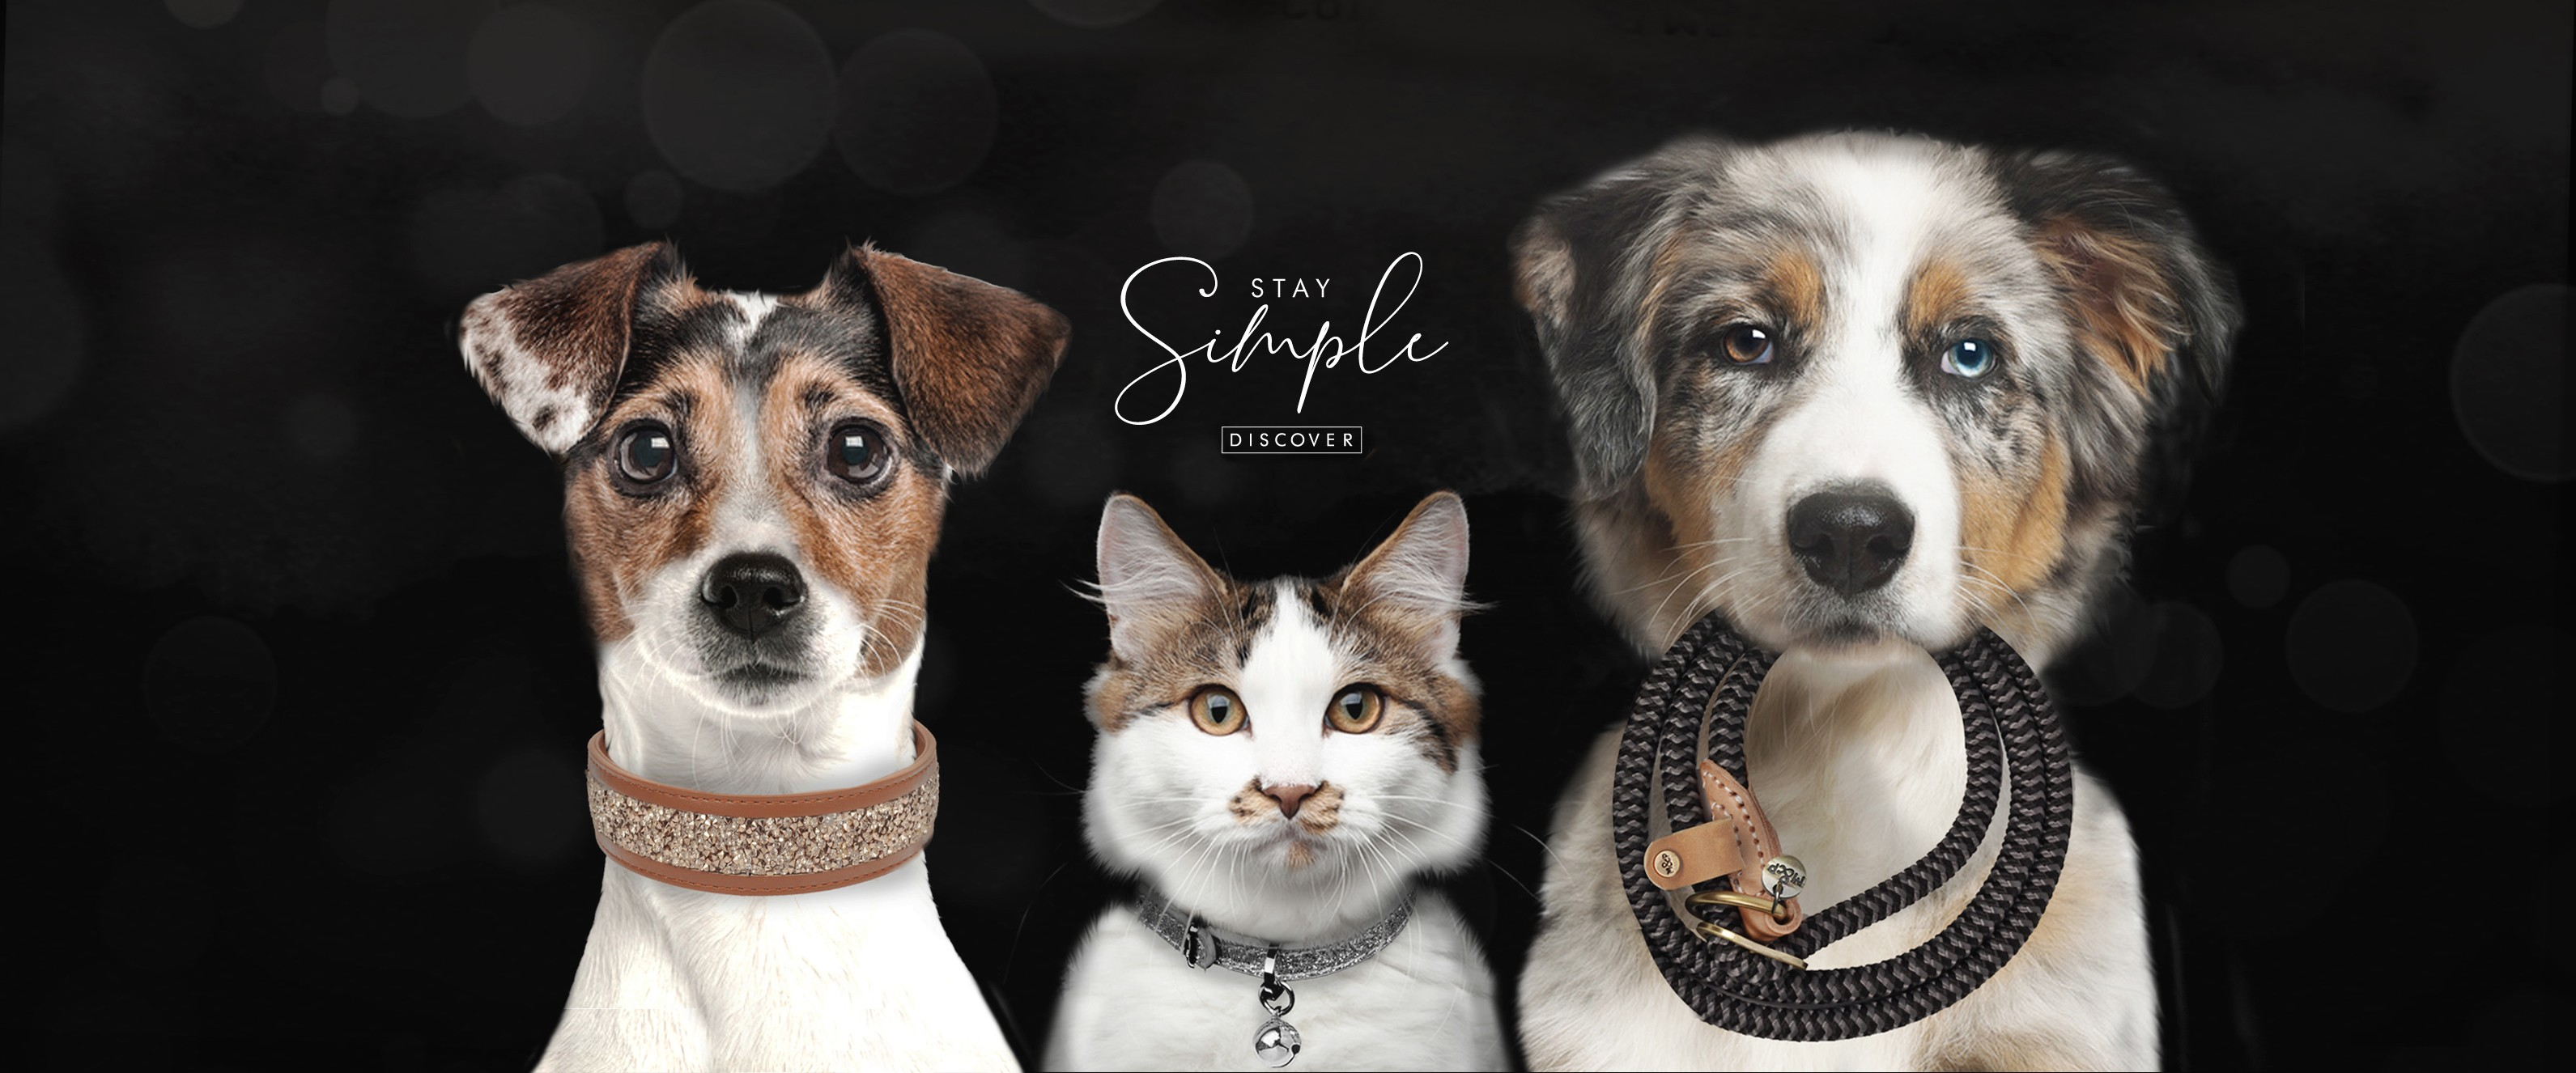 Milk & Pepper, Fashion And Accessories For Dogs & Cats -  Accessories Winter 2018